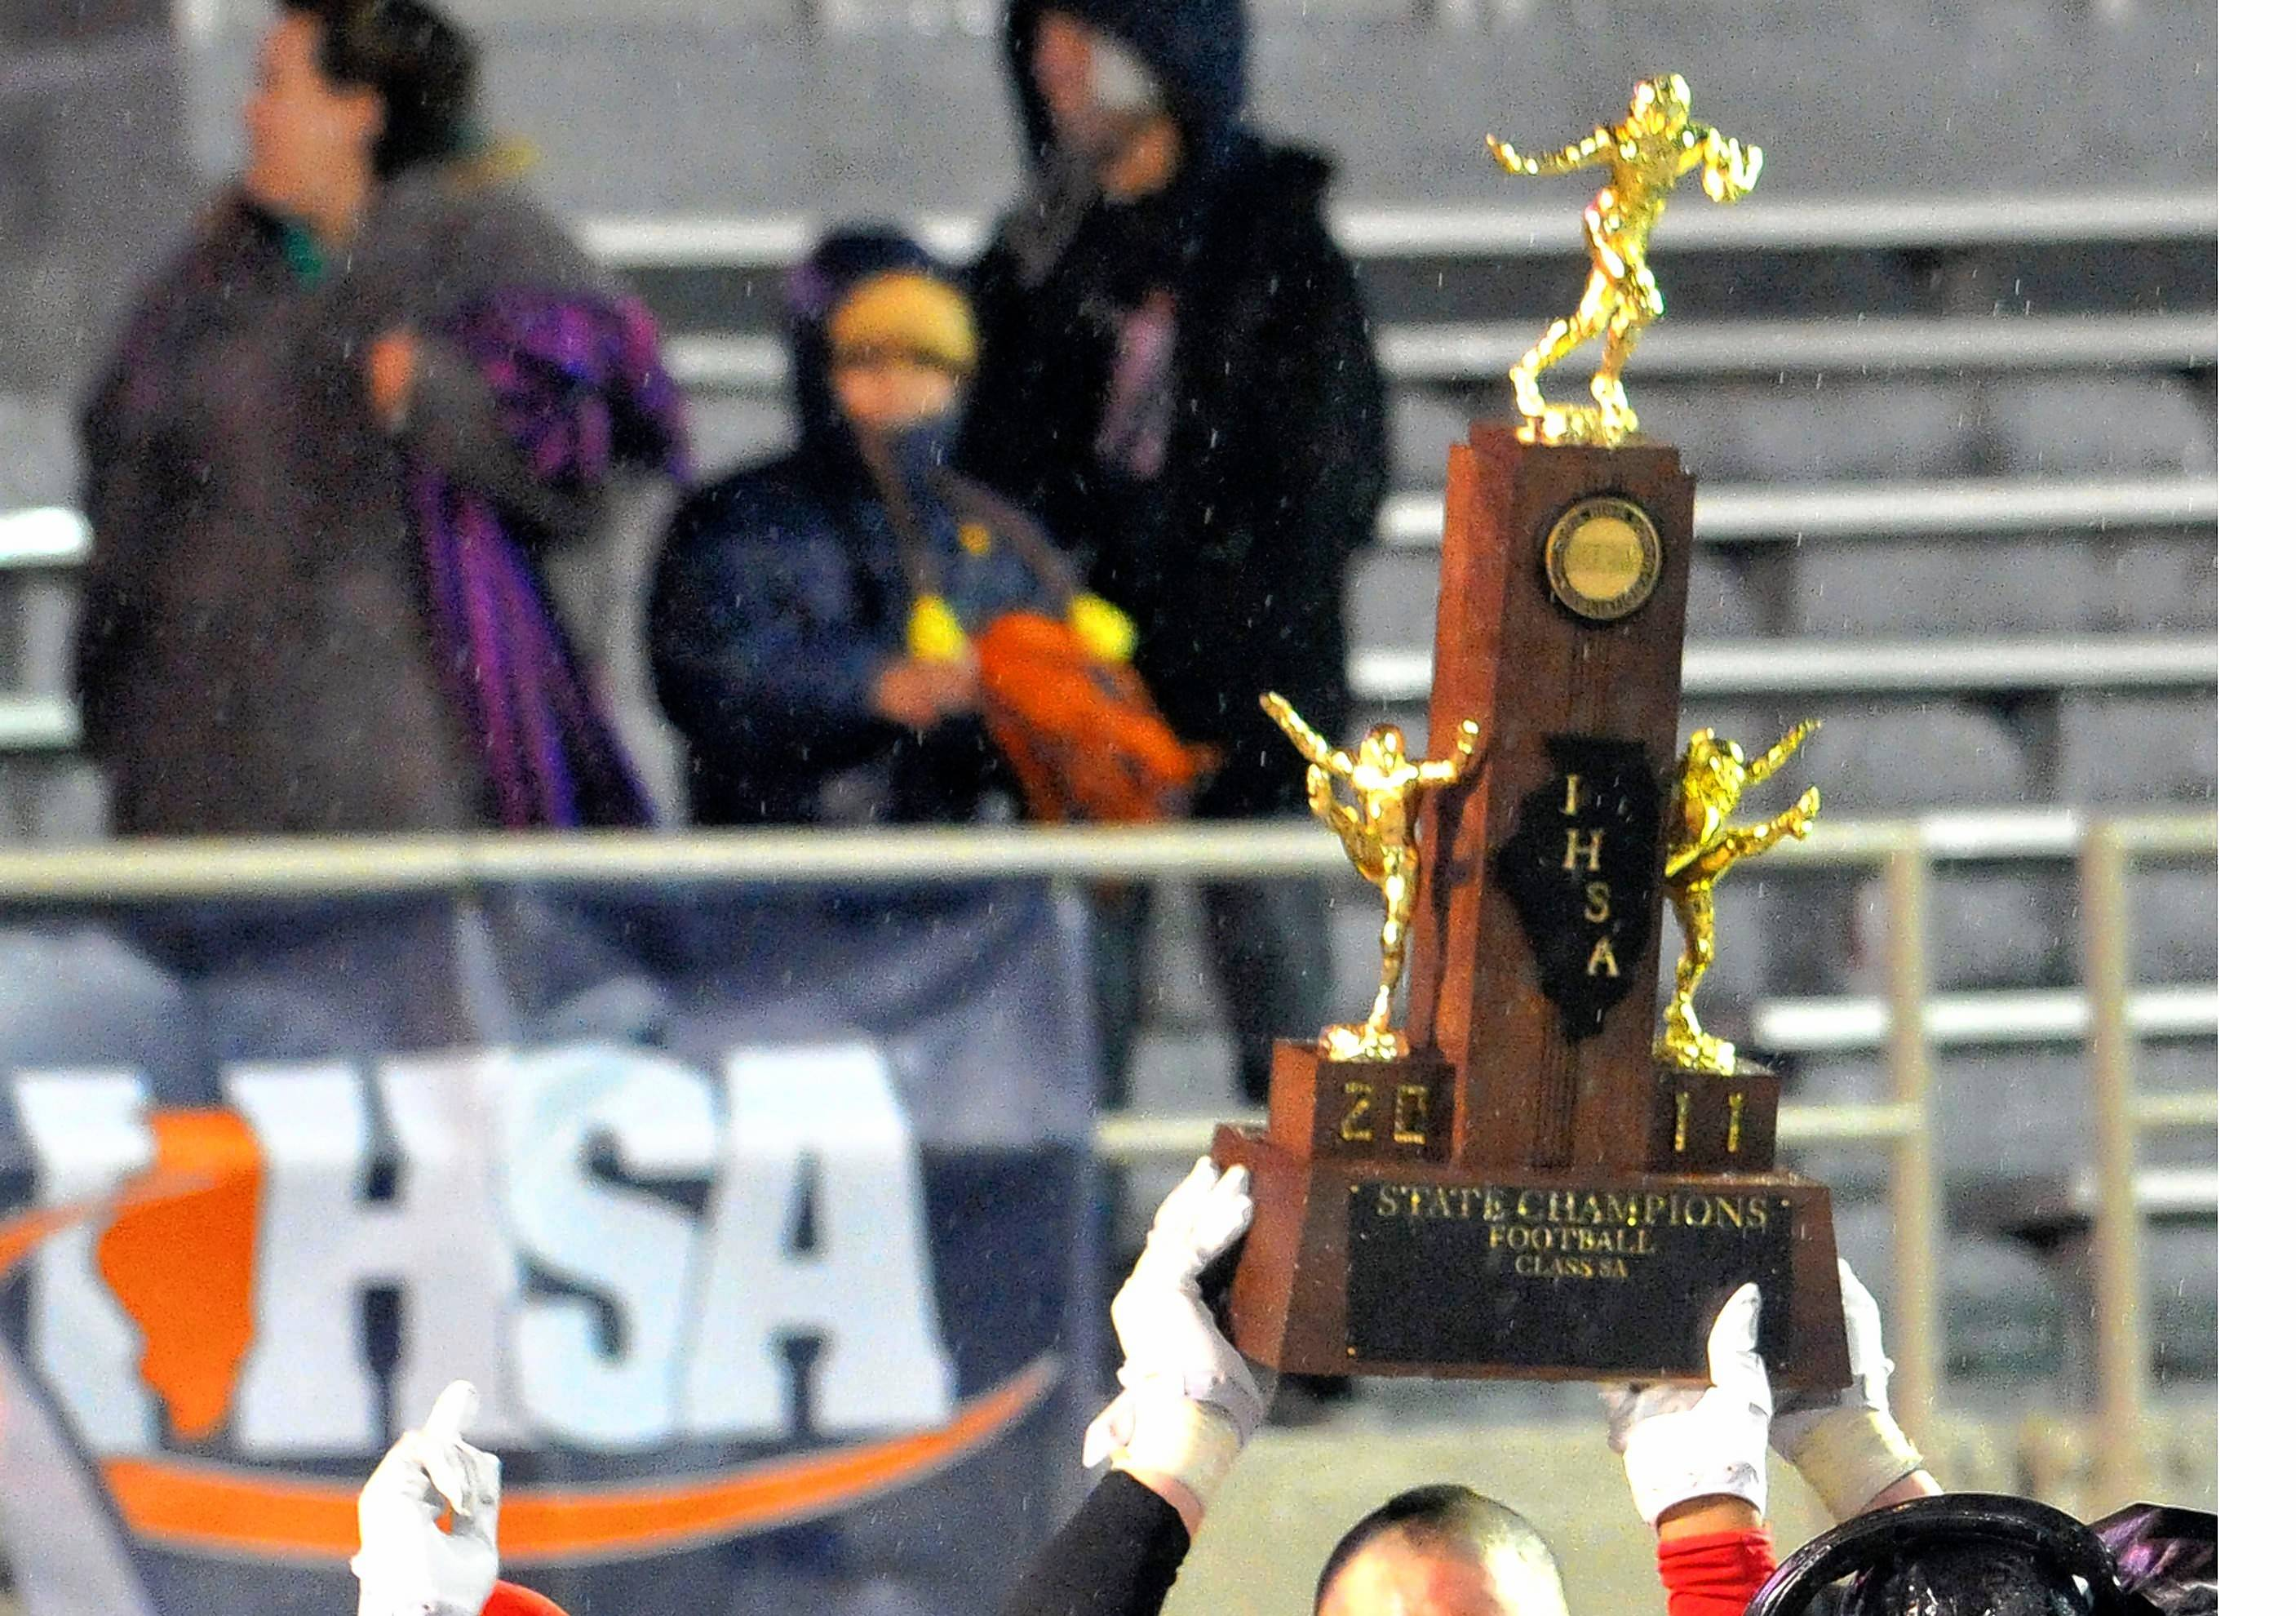 Fenwick High School's football team will not be able to compete for the Class 7A trophy this weekend. A Cook County judge rejected Fenwick's appeal over last week's game, and now Plainfield North will play East St. Louis for the IHSA Class 7A championship.